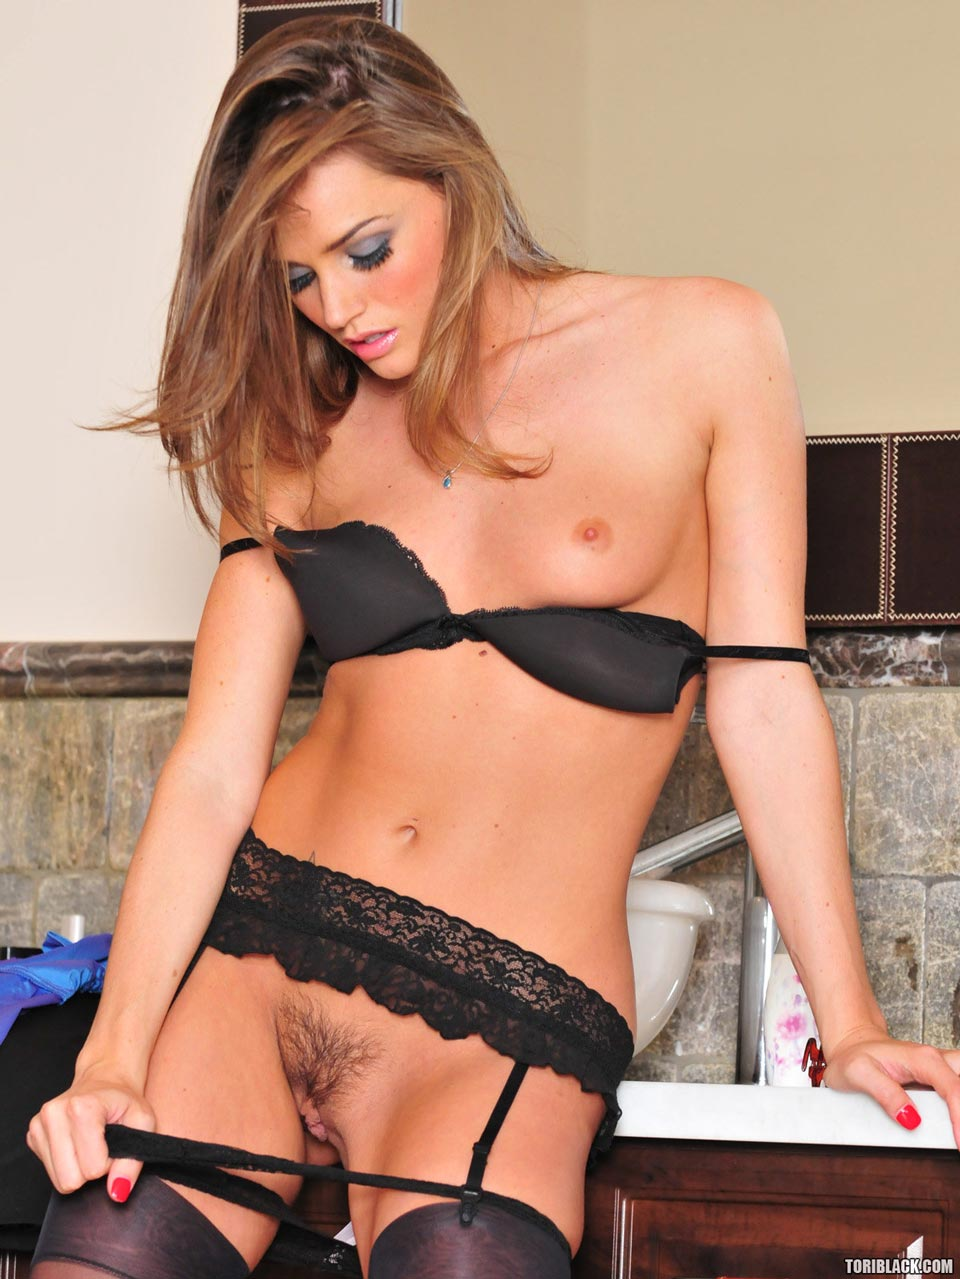 Tori black sexy photos